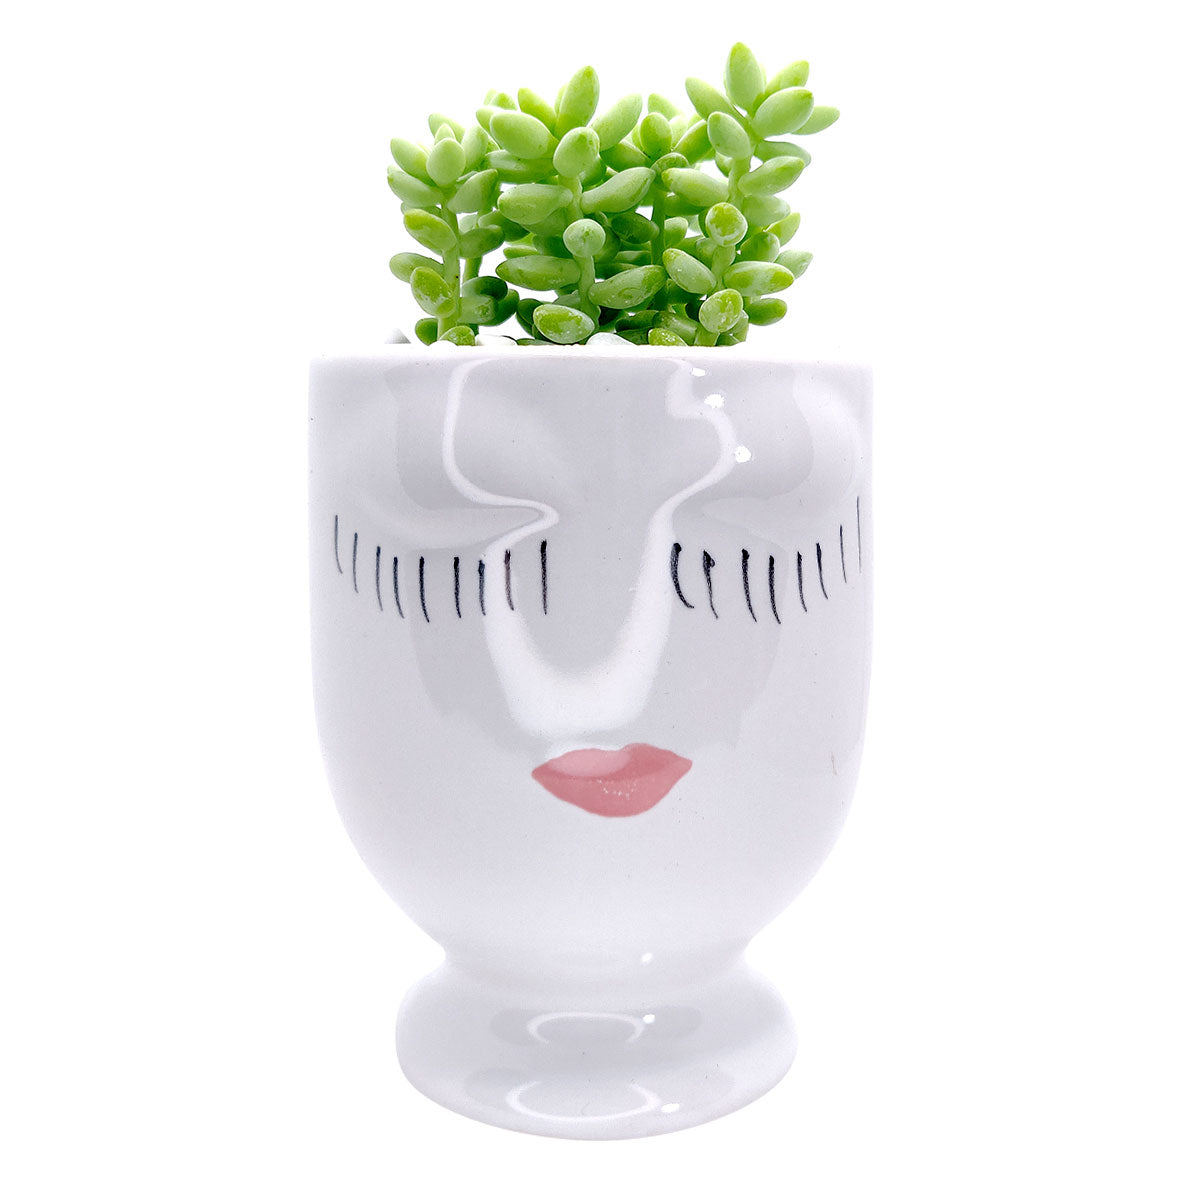 Hand-painted Pretty Lady Face Pot for sale, 4 inch pot for cactus and succulent plant, unique Artistic Lady Face Pots, modern home decor ideas, small ceramic pot for succulent, succulent gift ideas for women